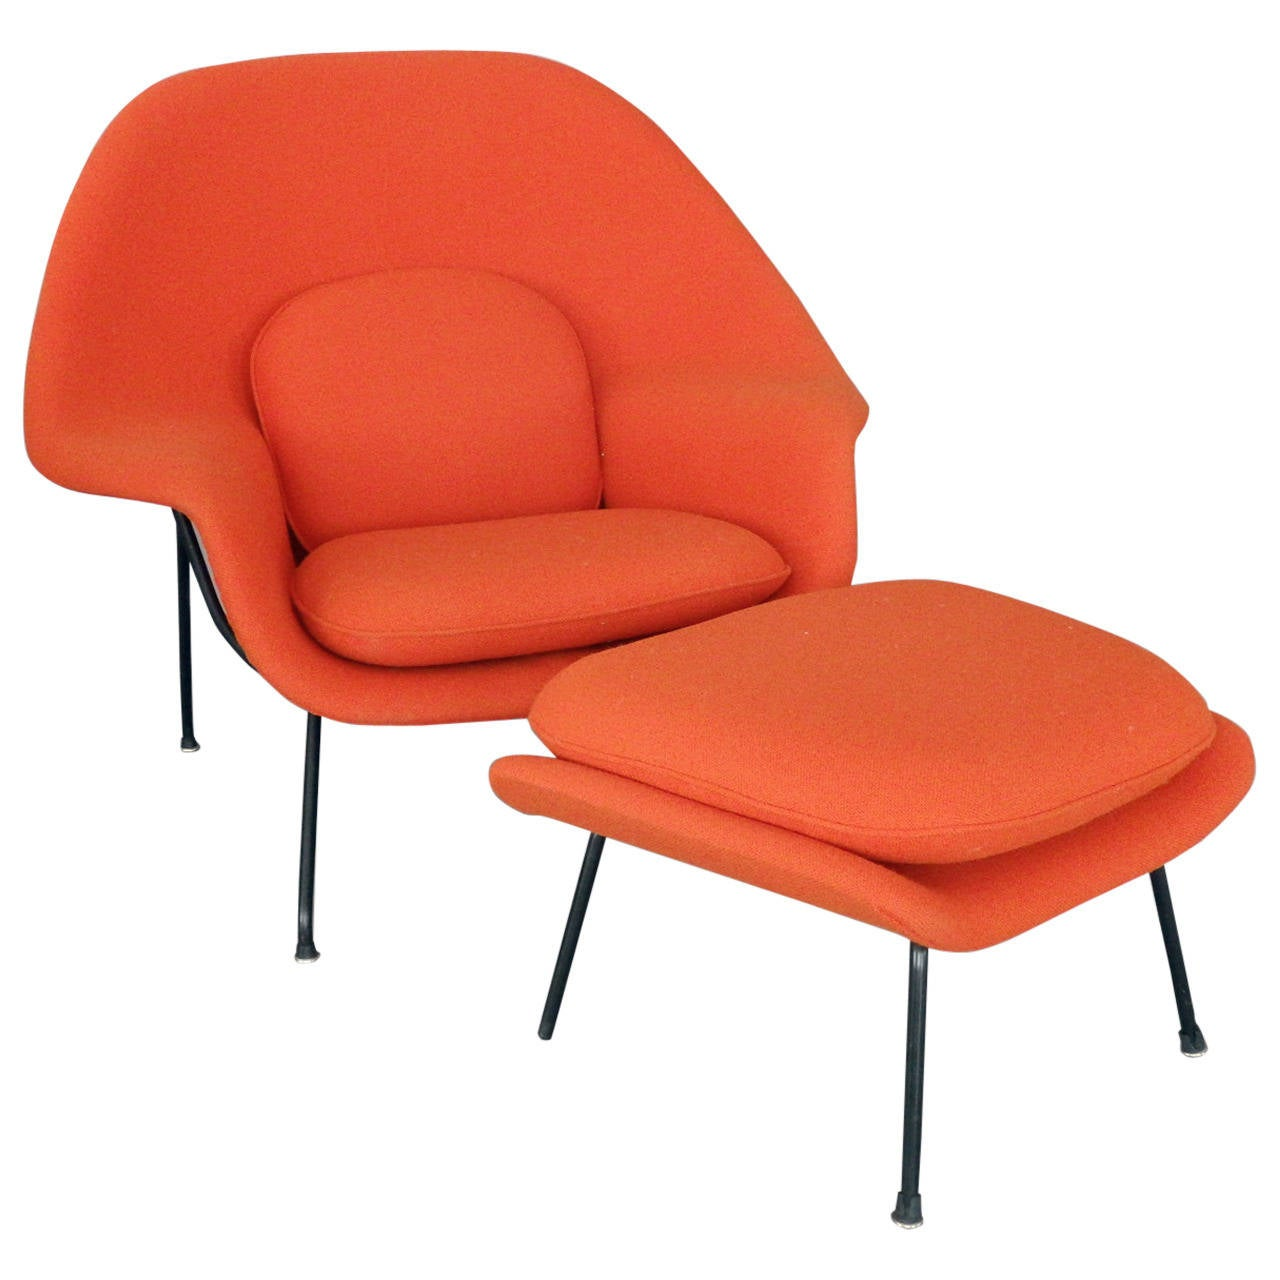 Knoll Egg Chair Saarinen For Knoll Womb Chair With Ottoman At 1stdibs